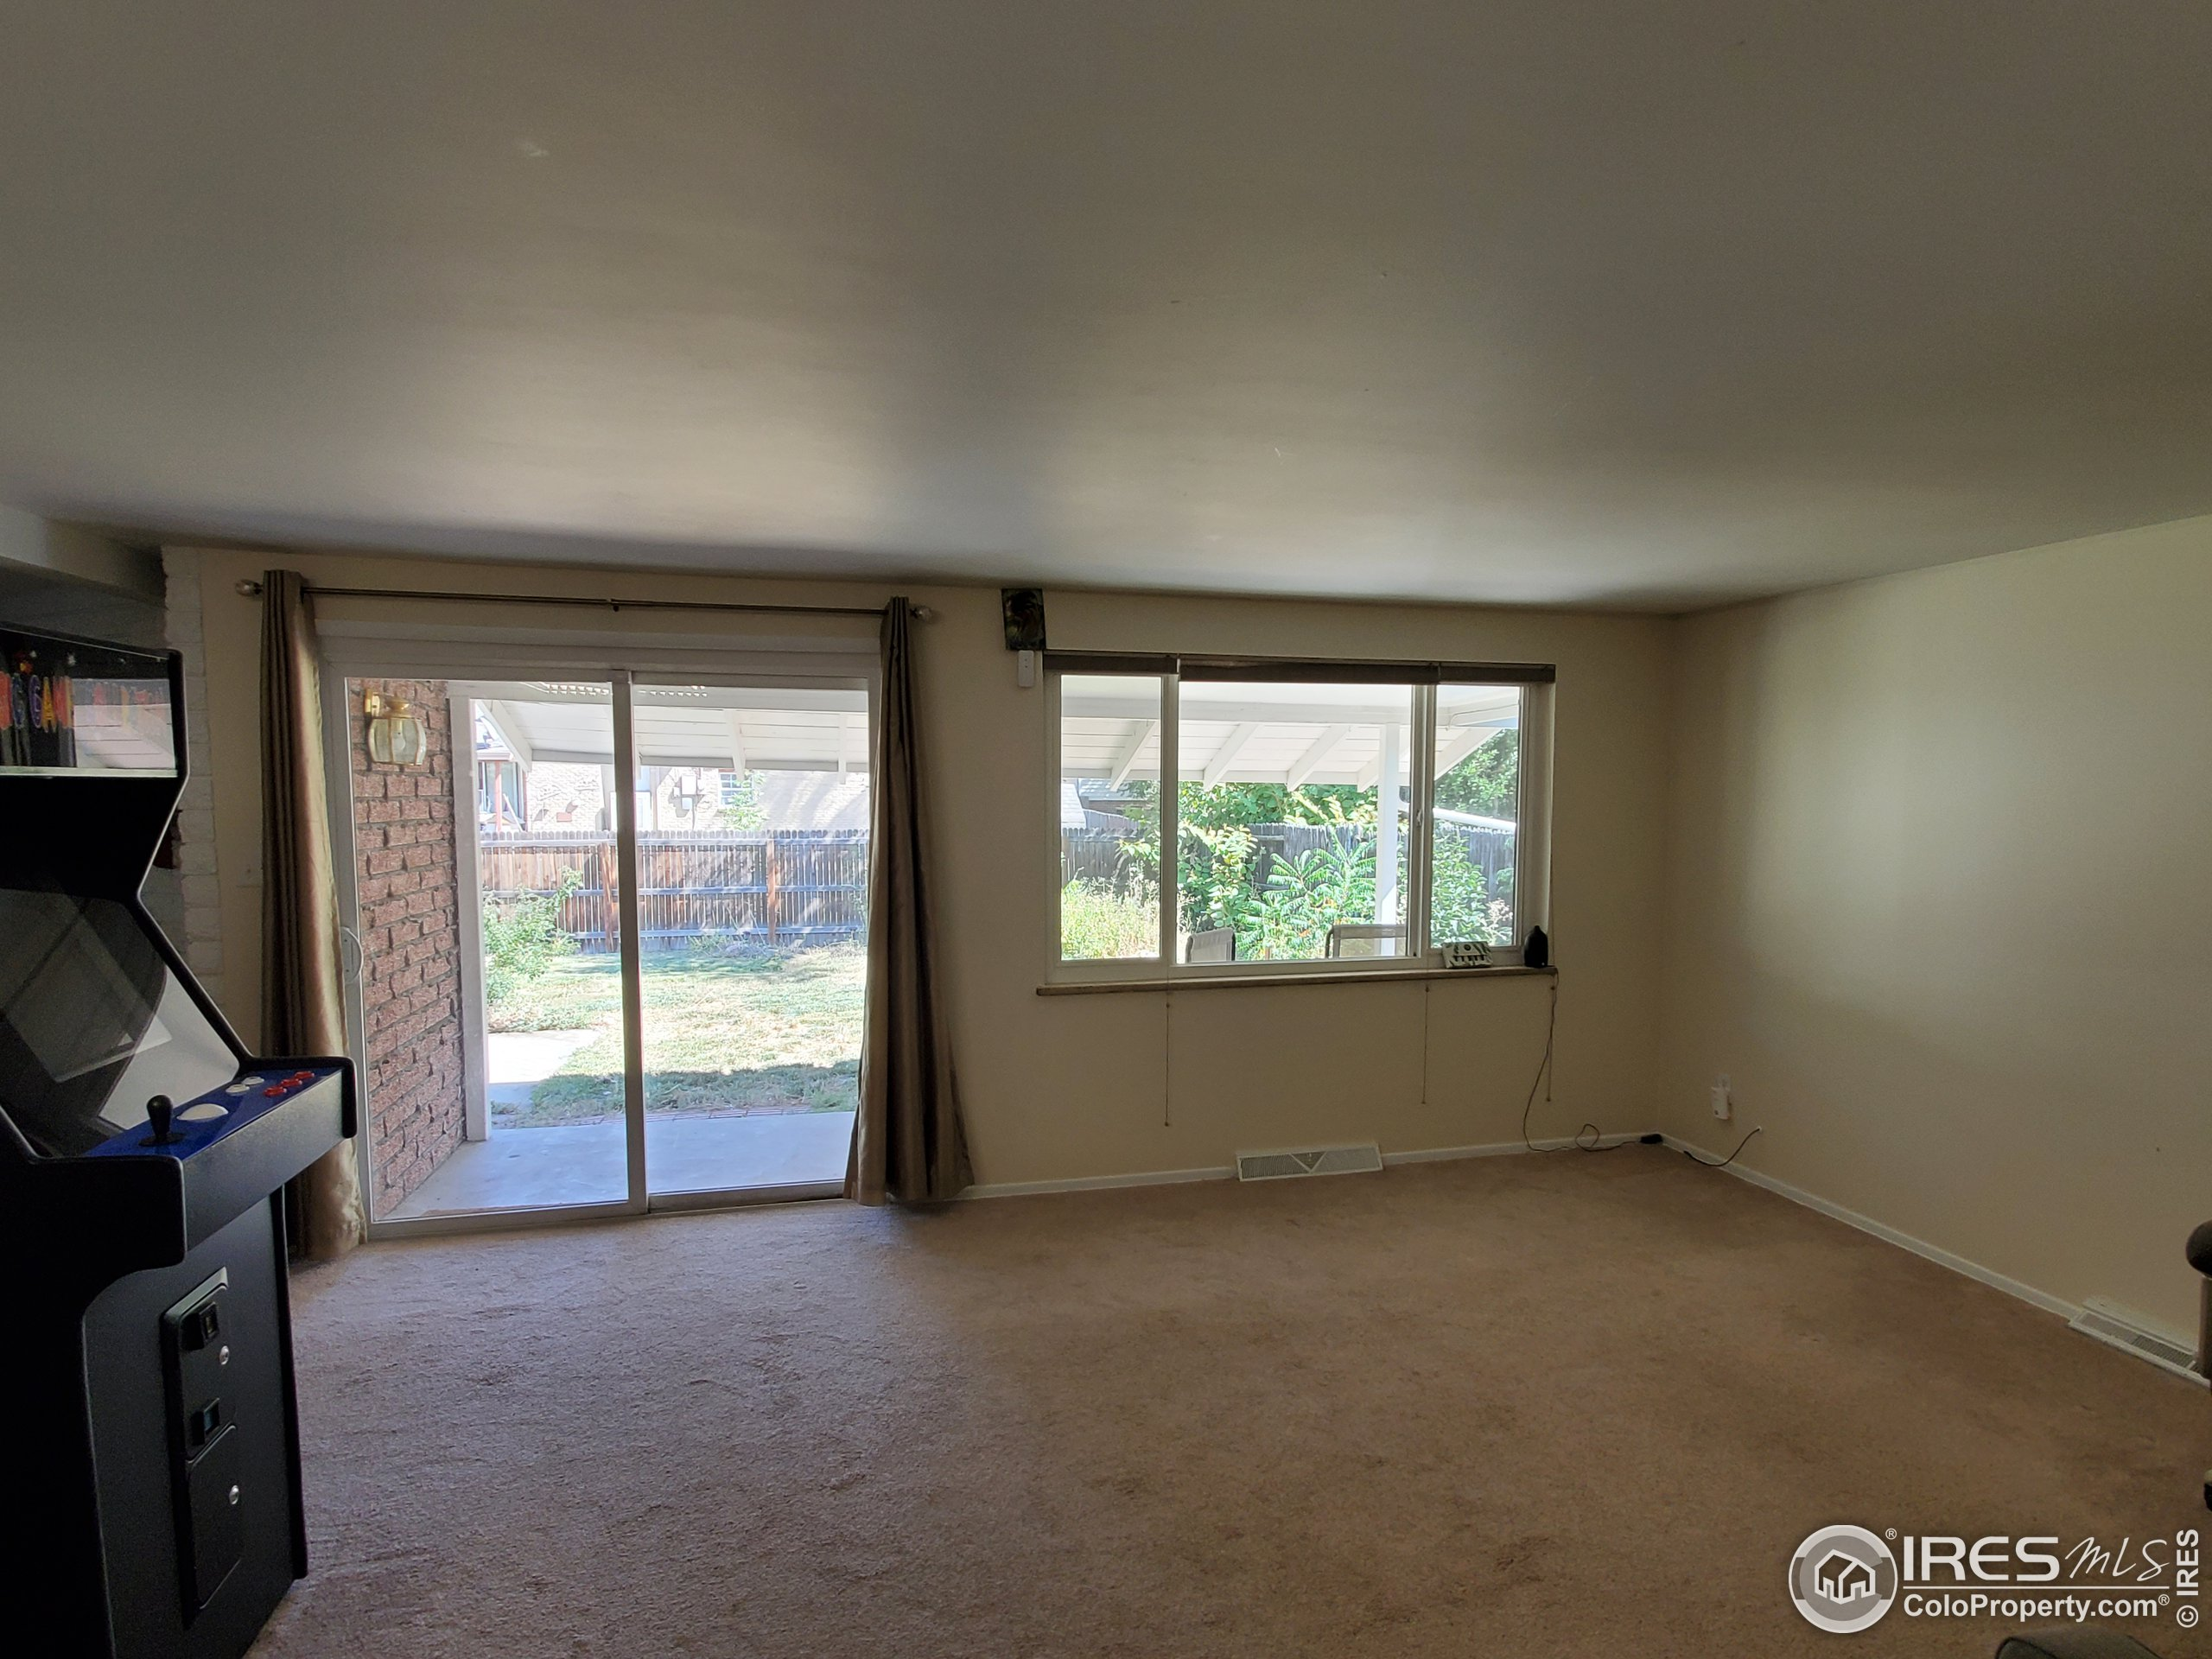 Living Room with Sliding Glass Door to Covered Patio